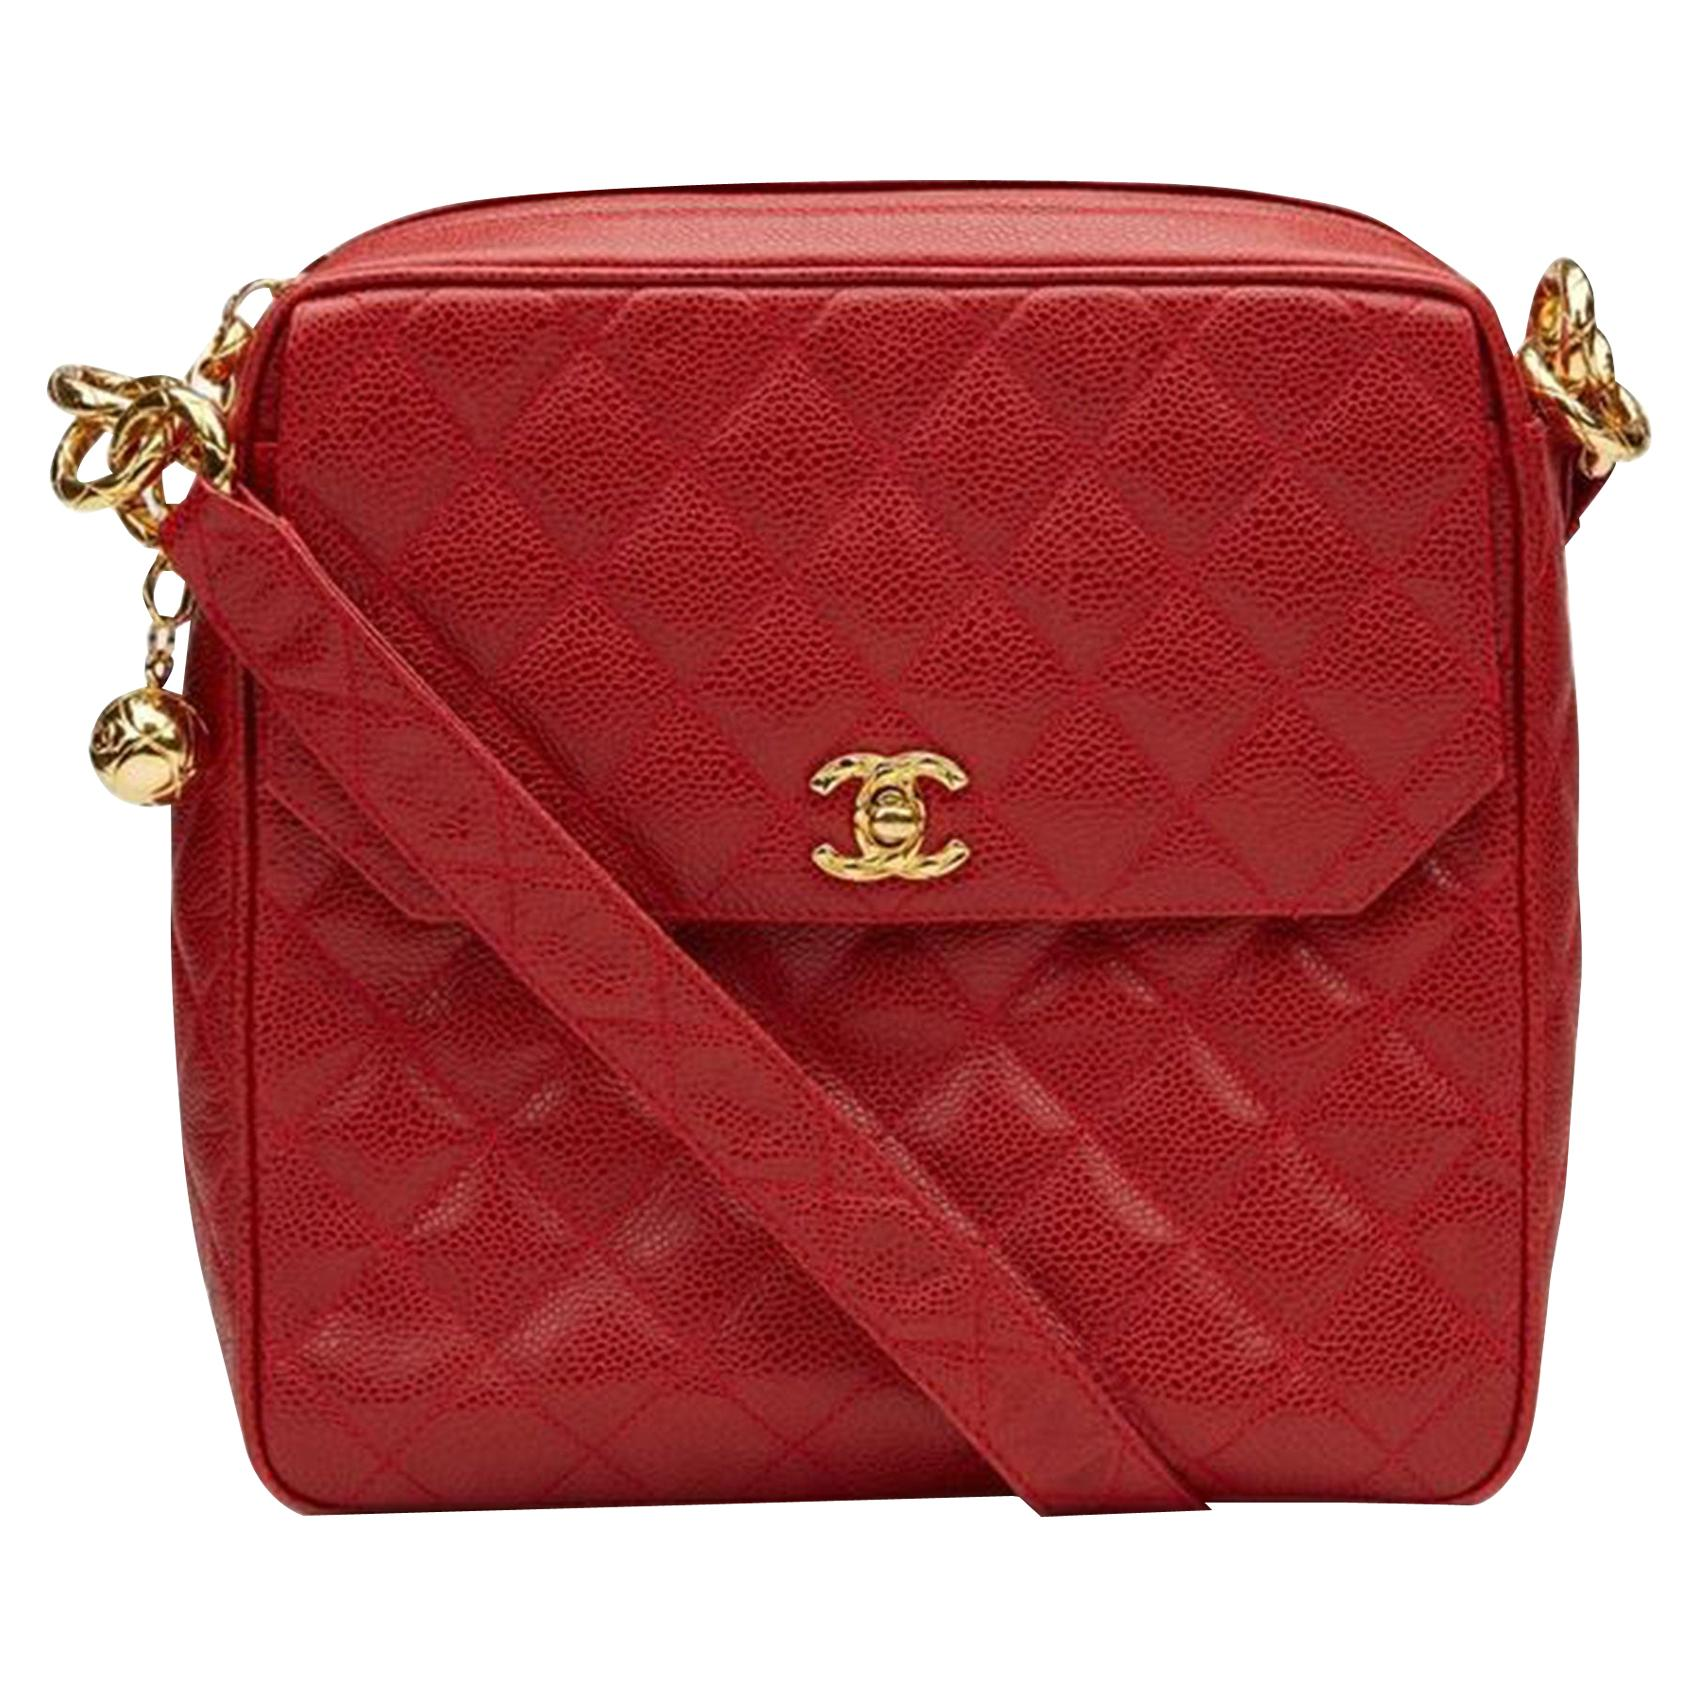 Chanel Classic Flap Vintage with Gold Hardware Red Caviar Leather Cross Body Bag